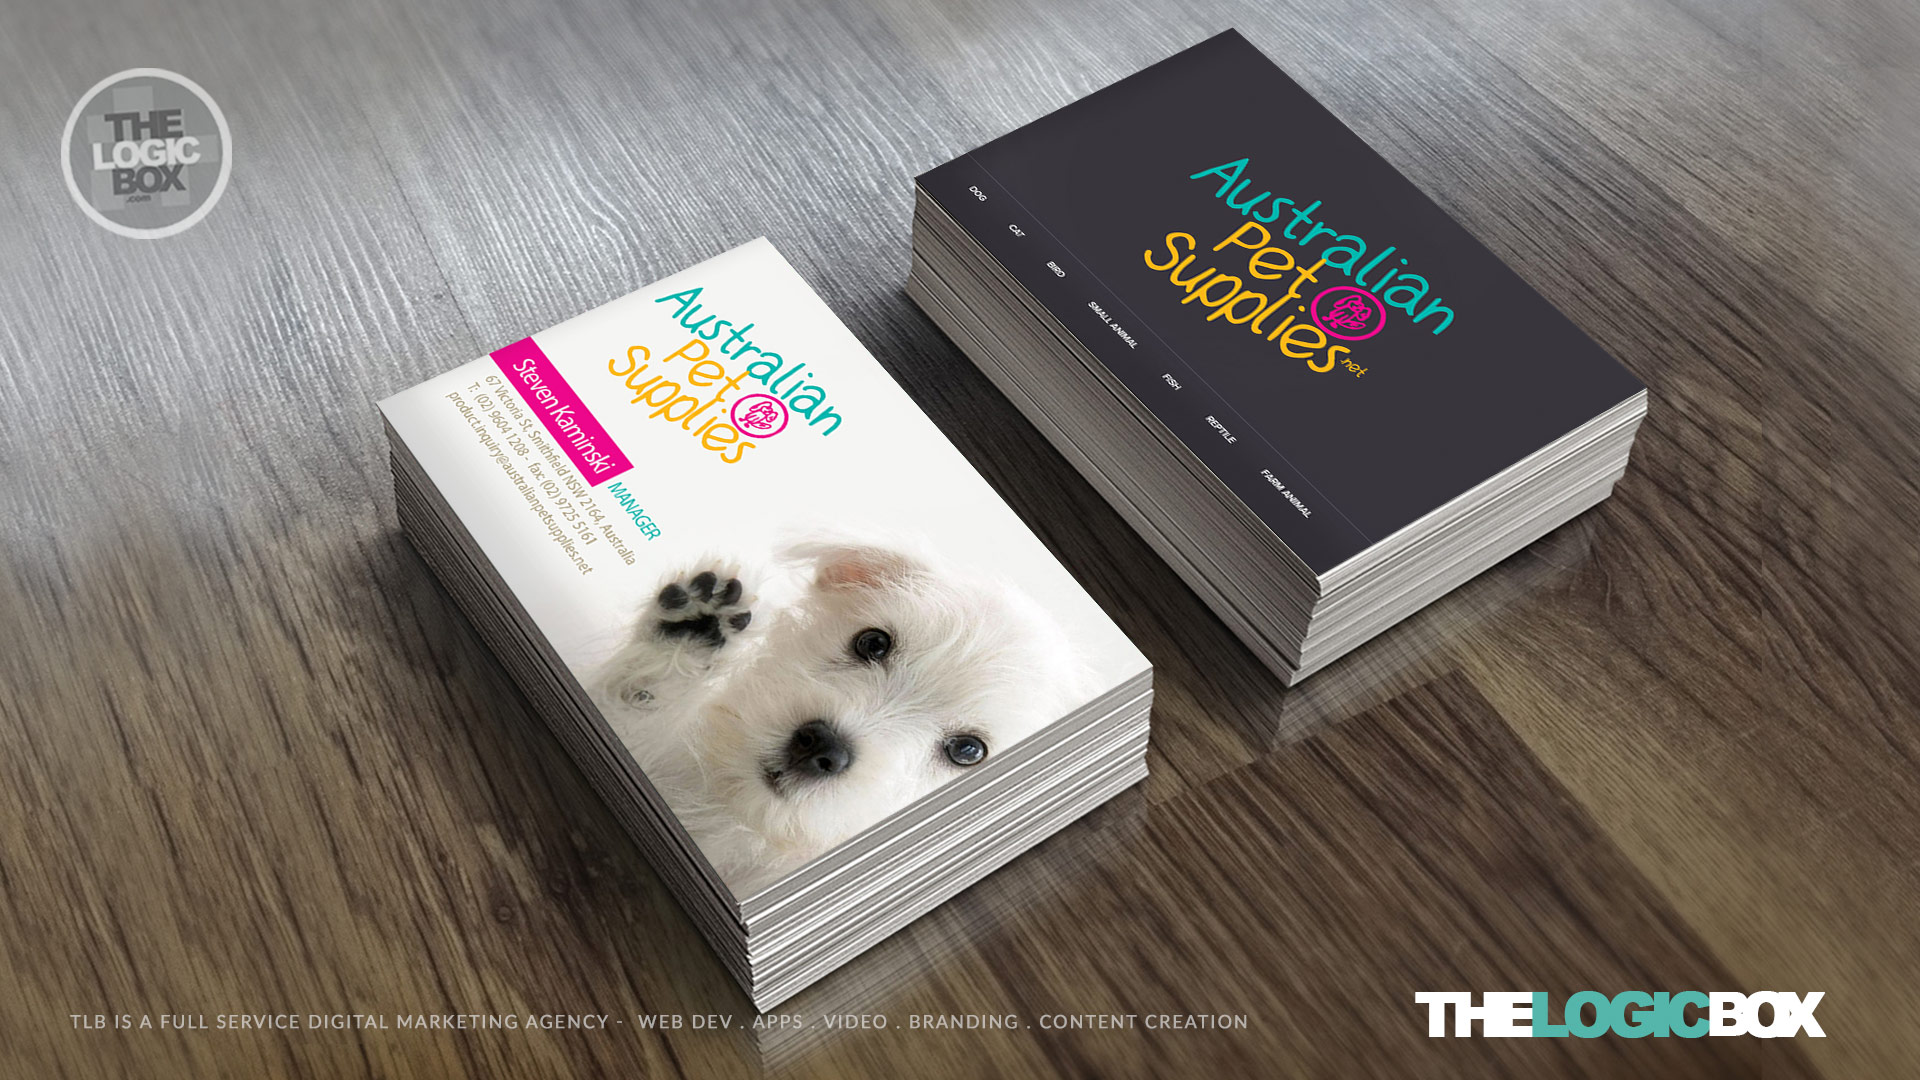 Business-Card-the-logic-box-agency-5-AustralianPetSupplies